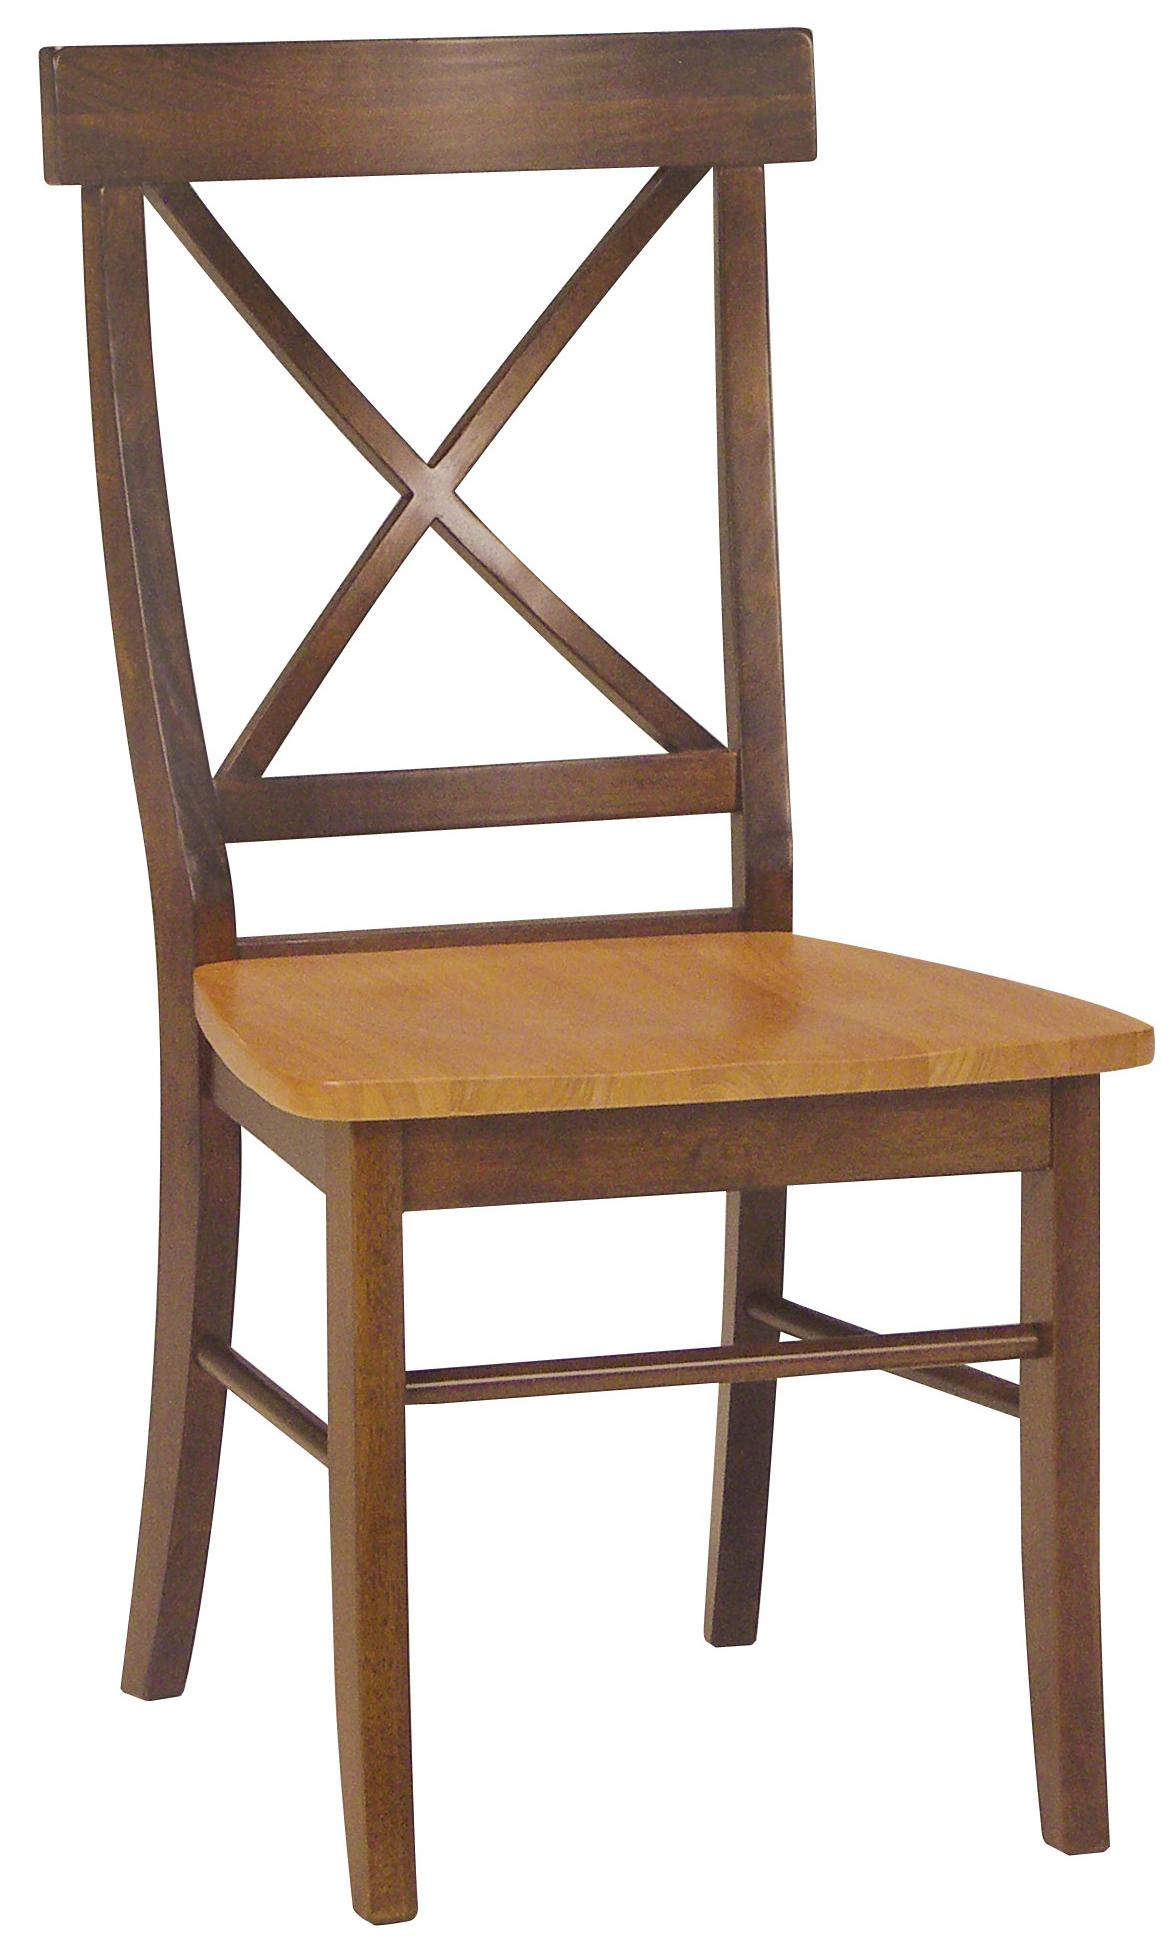 John Thomas Dining Essentials X-Back Side Chair - Item Number: C58-613